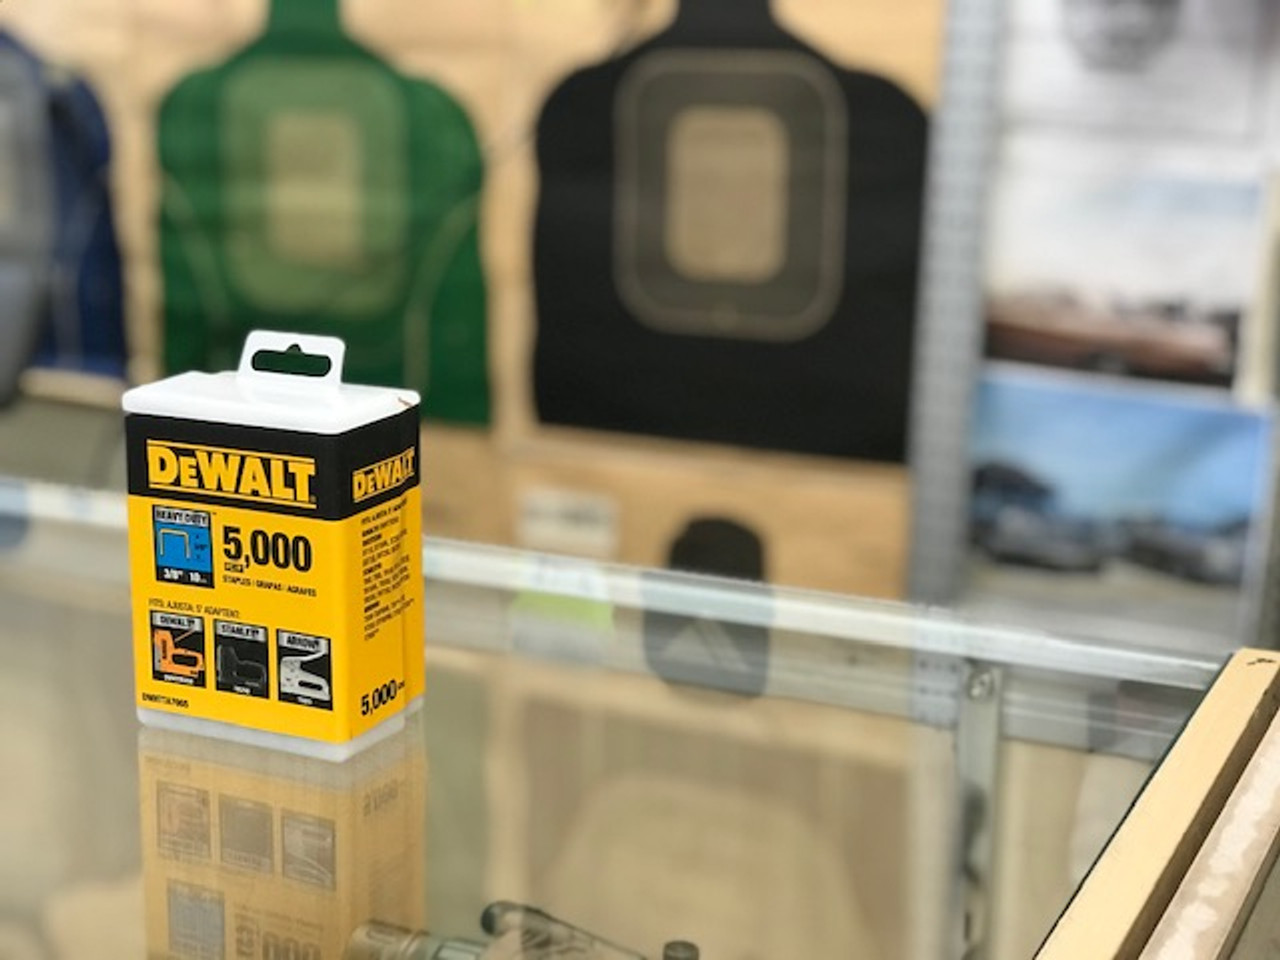 DEWALT - DWHTTA7065 HEAVY DUTY STAPLES